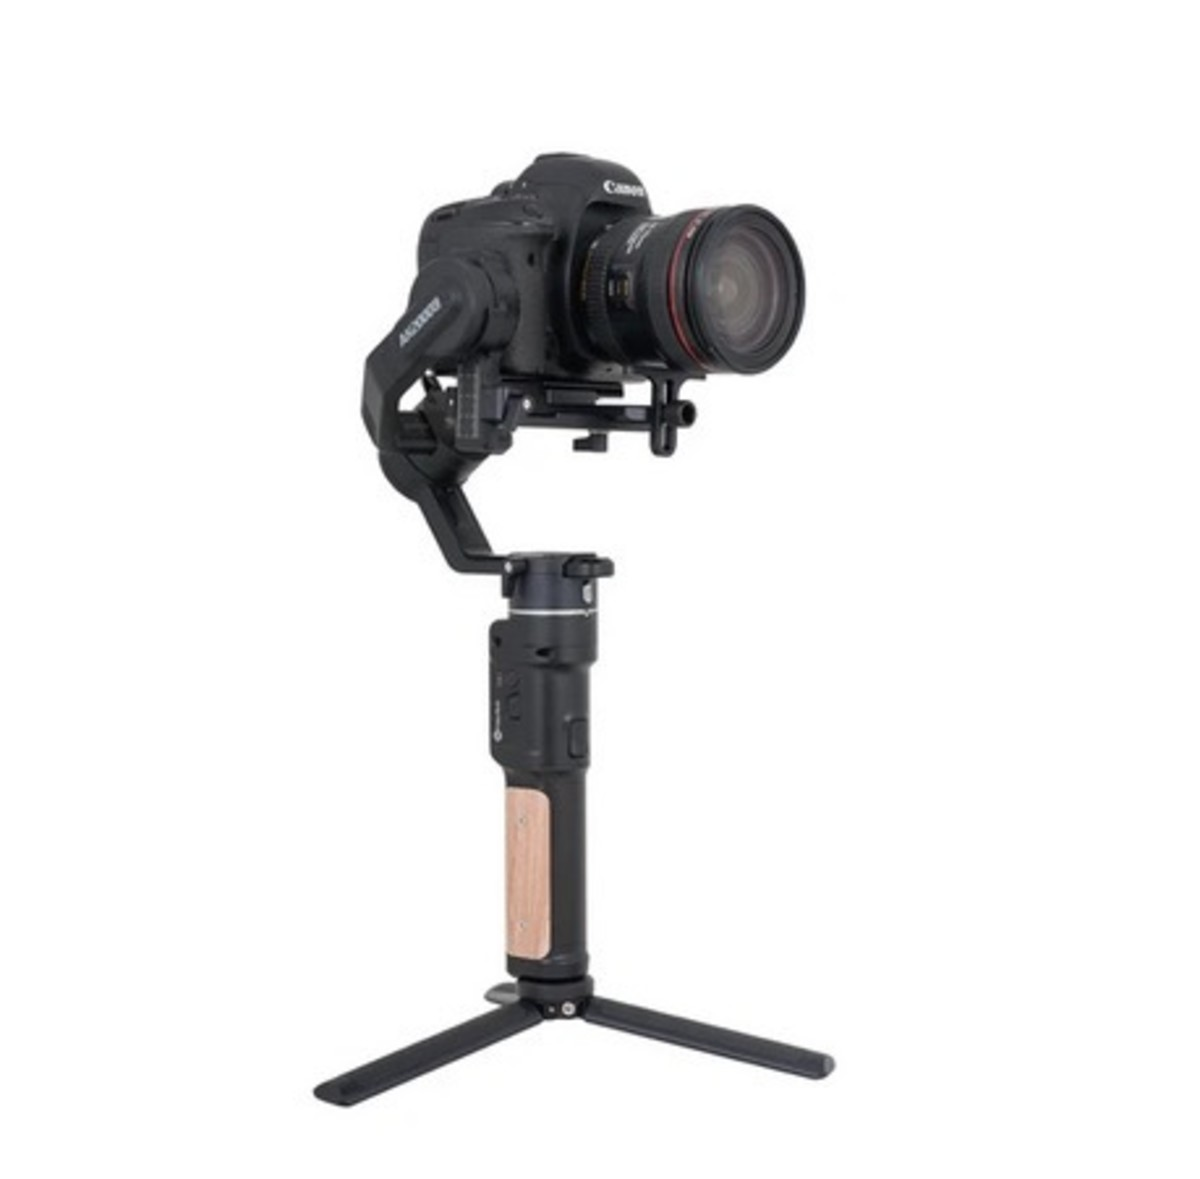 feiyutechs-ak2000c-is-a-low-cost-professional-gimbal-for-digital-cameras